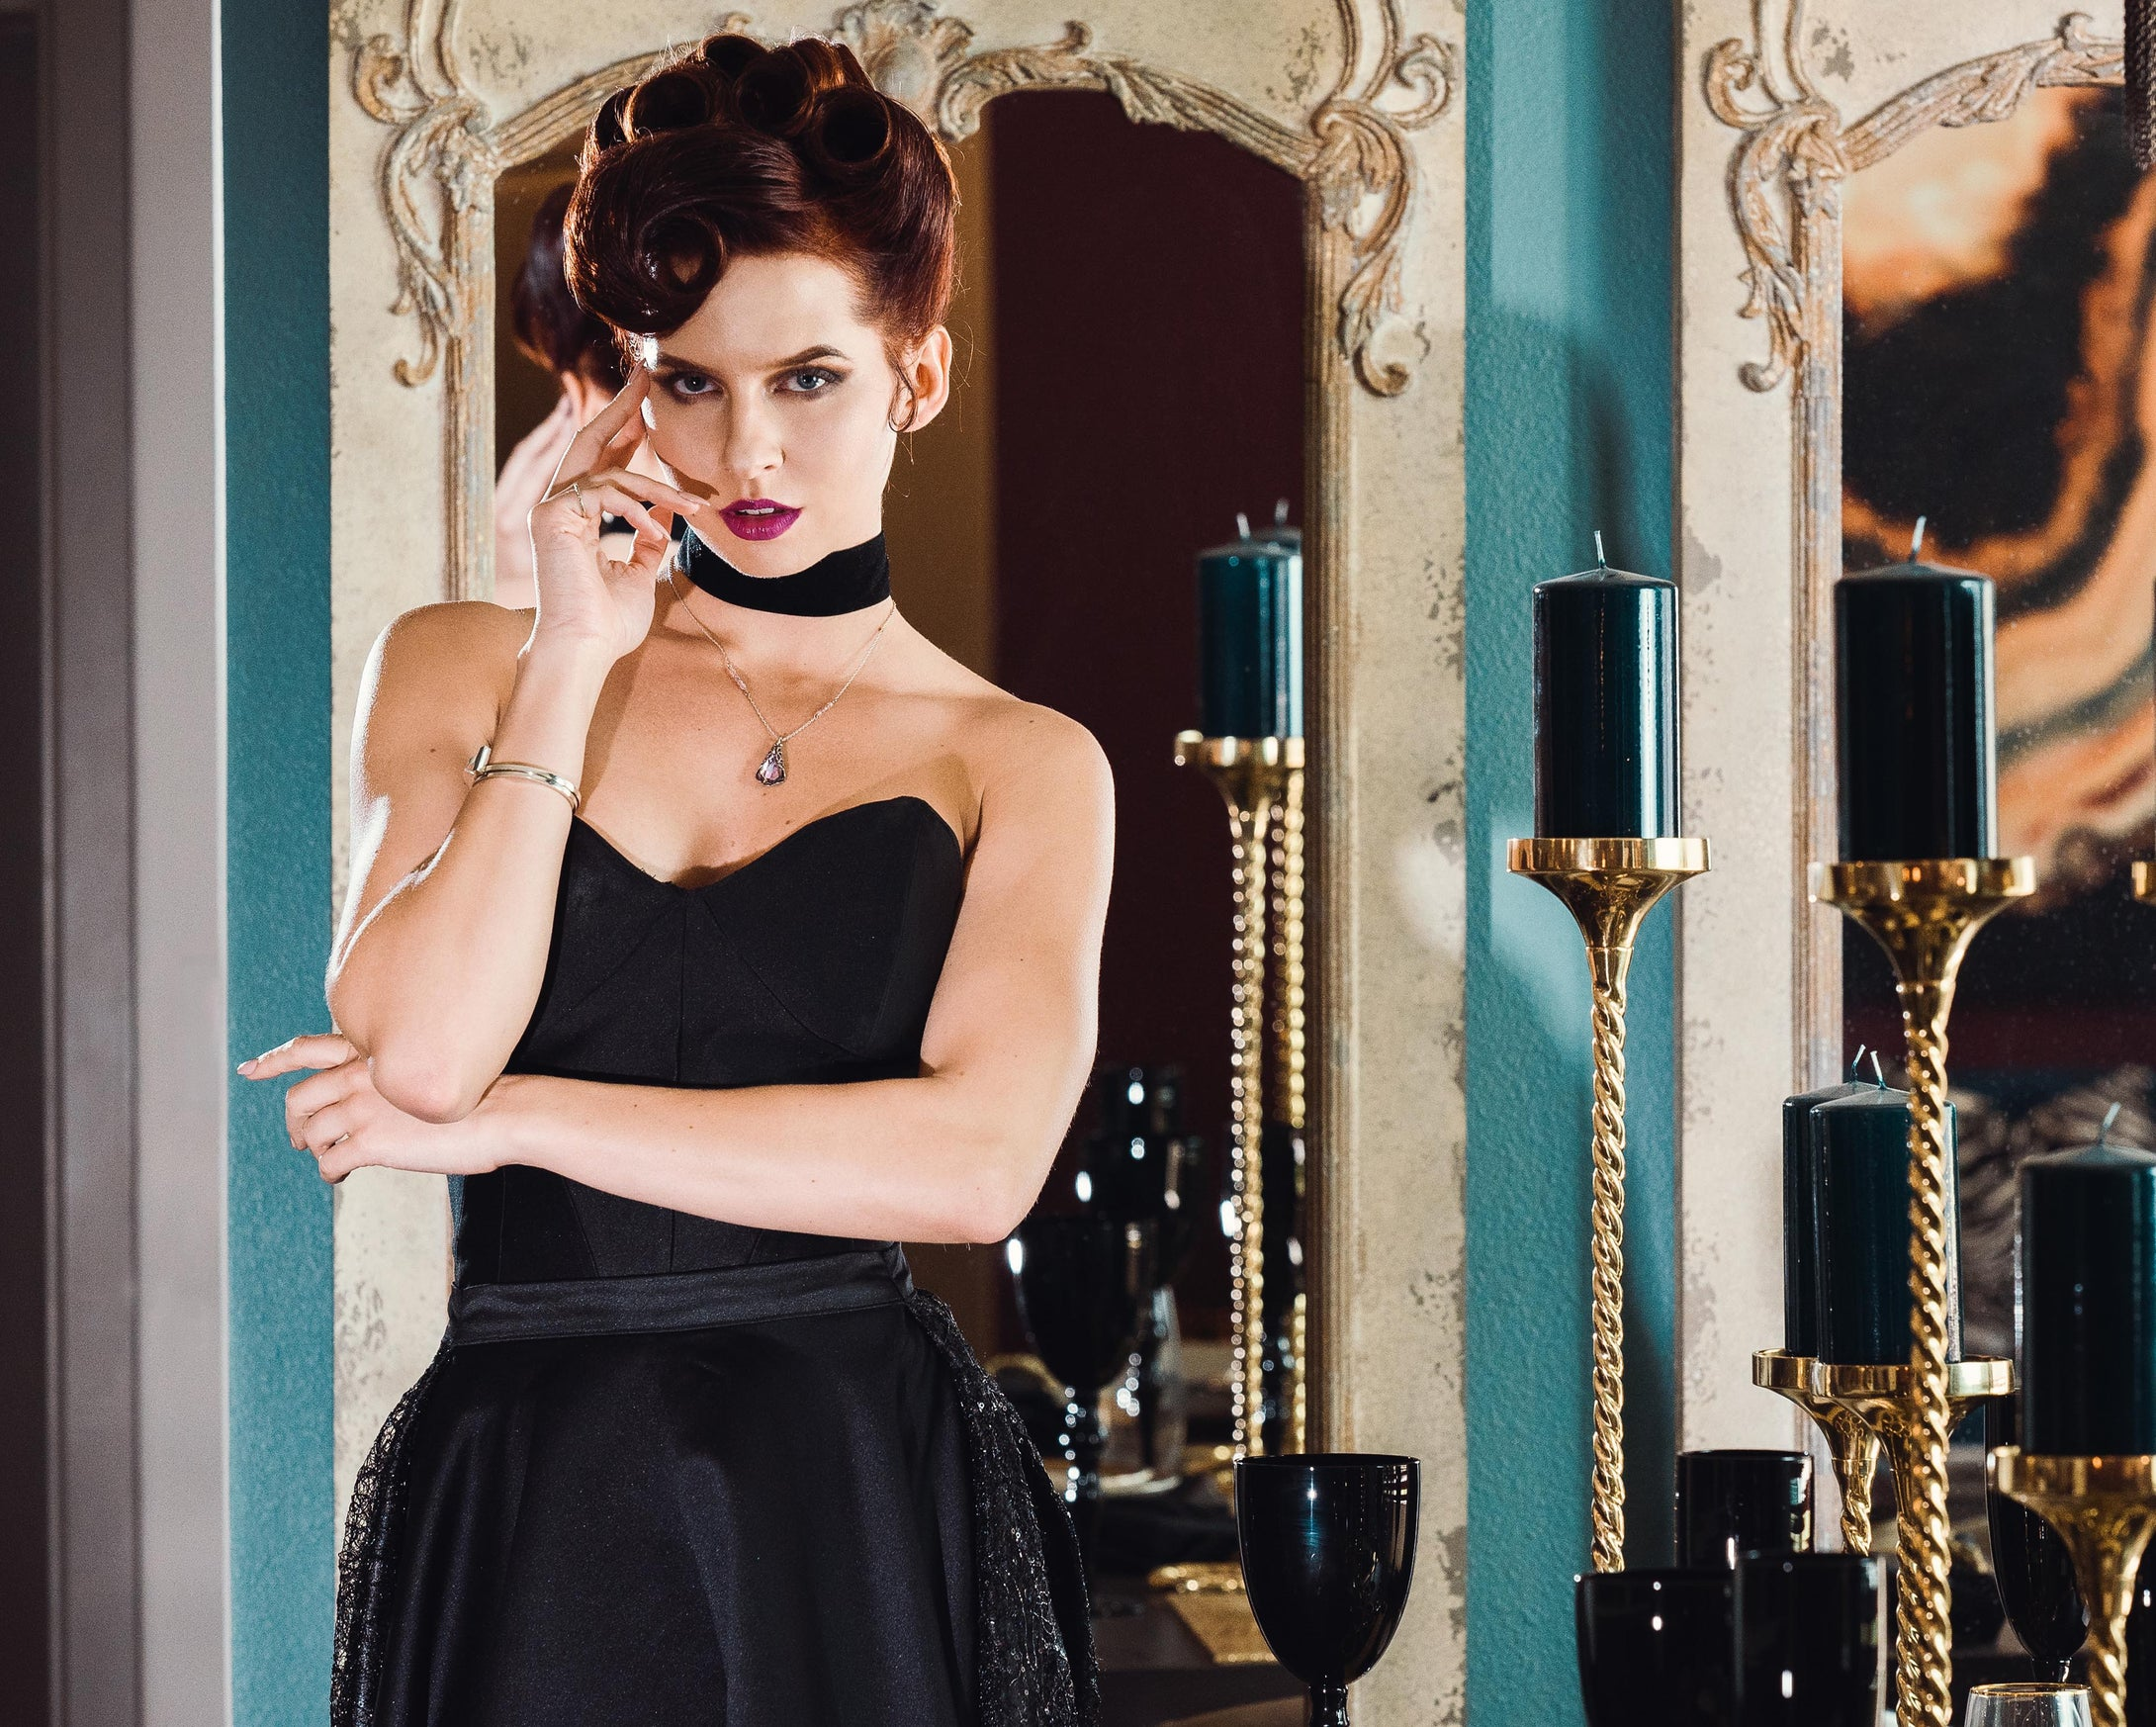 The best luxurious clothes made in Las Vegas, NV. These custom designs are well-priced and made in-house to provide you with great quality and customer service.